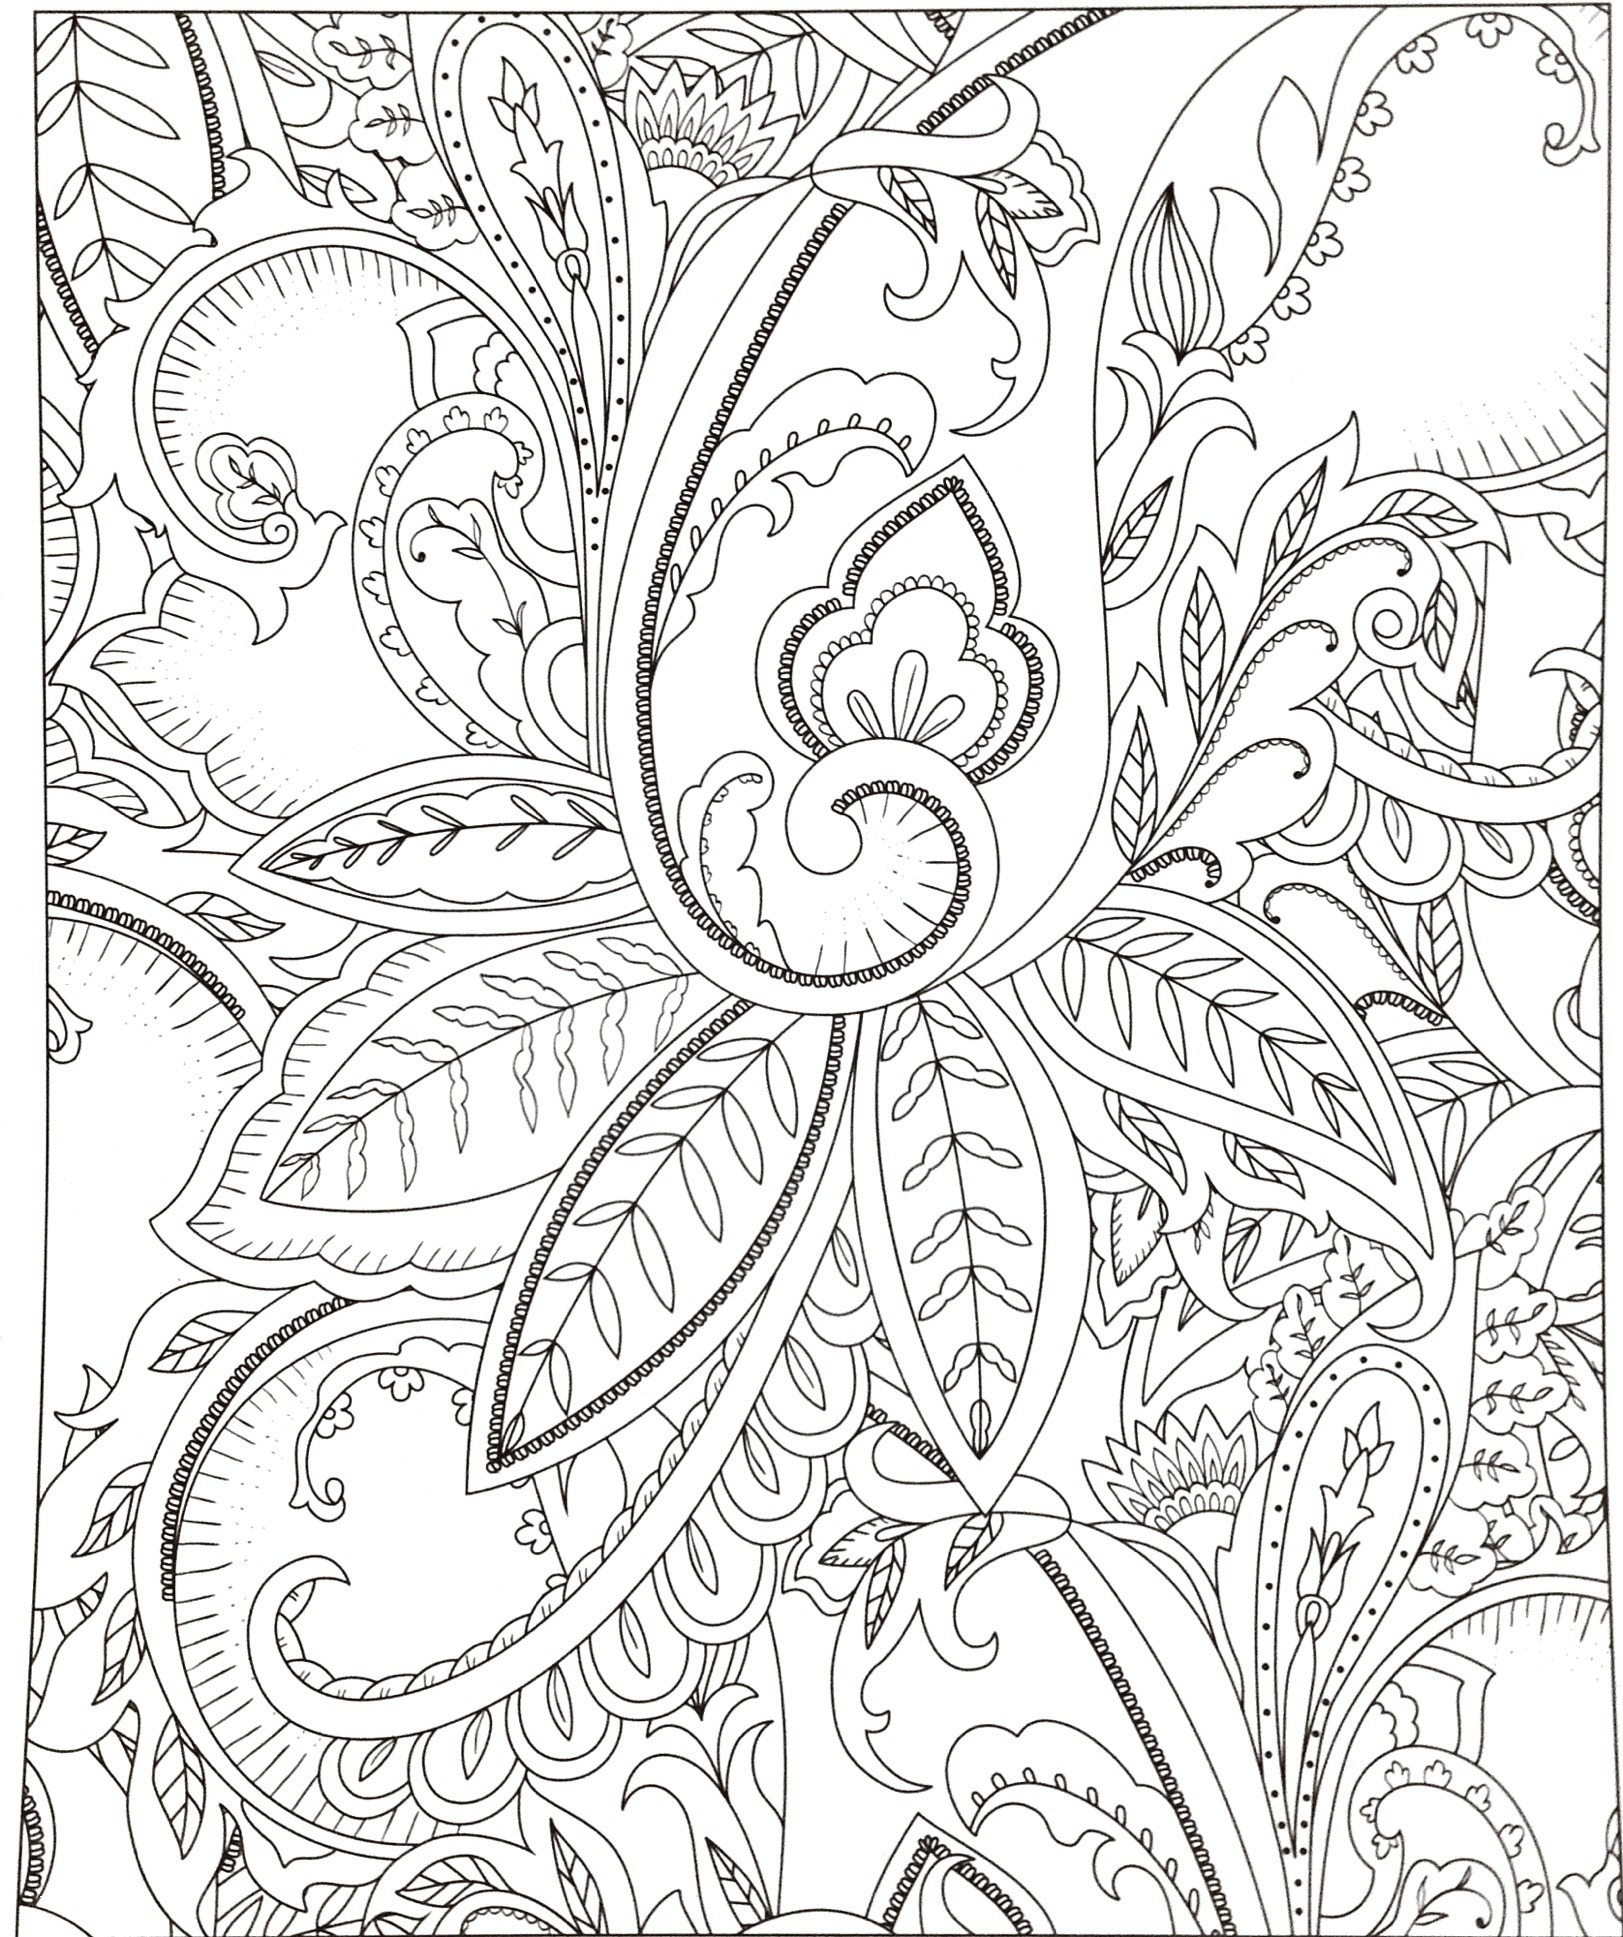 Herbs Coloring Pages  Gallery 7k - Free Download